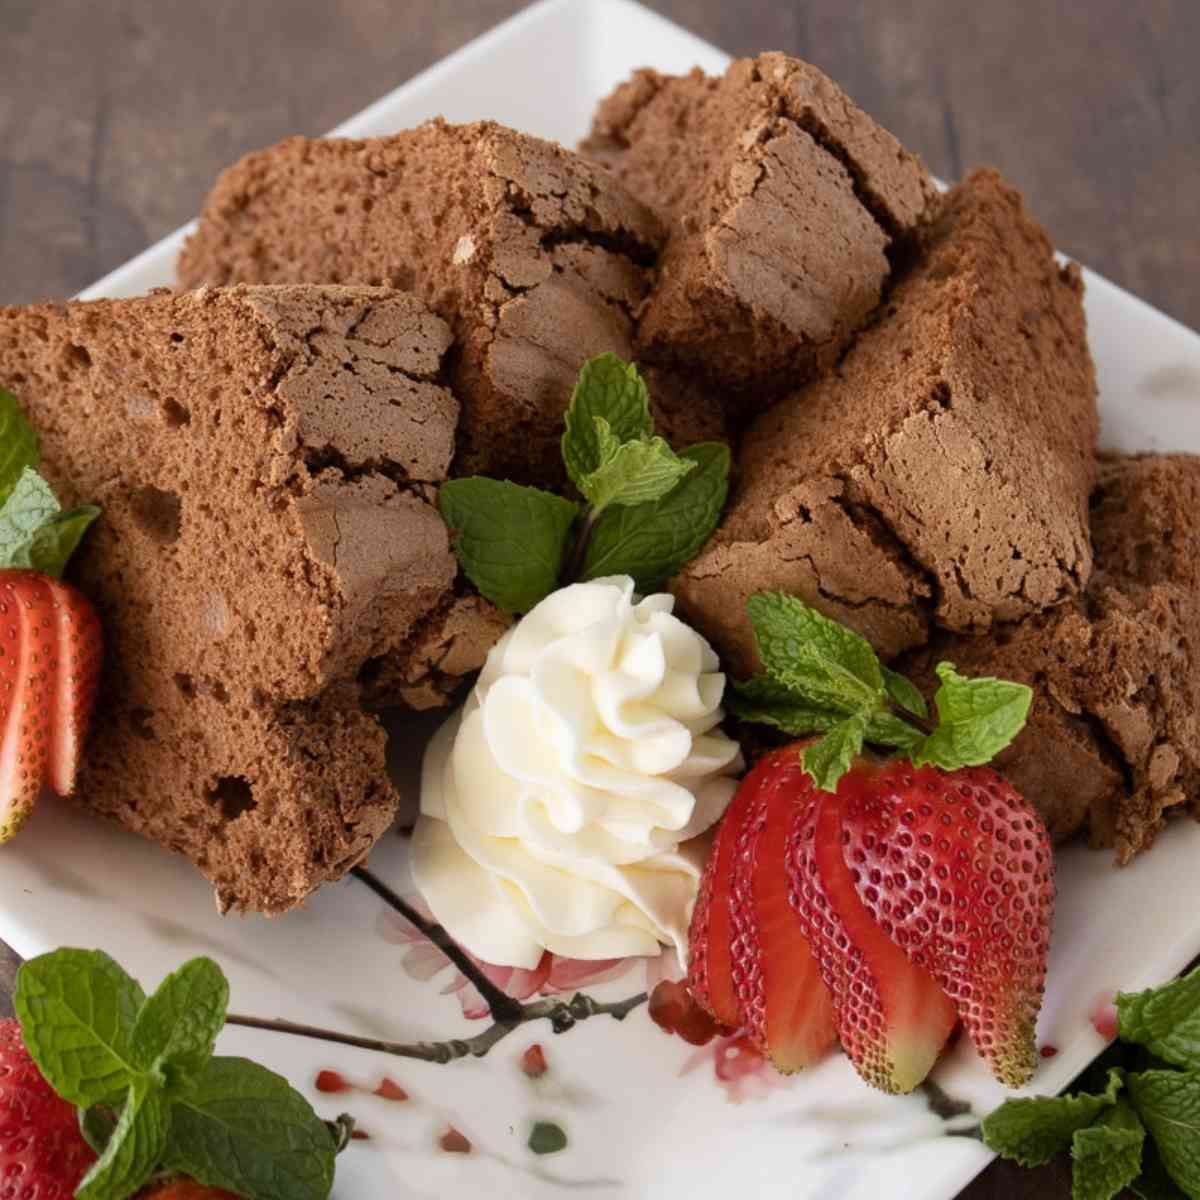 Plate of chocolate angel food cake wedges with strawberries.